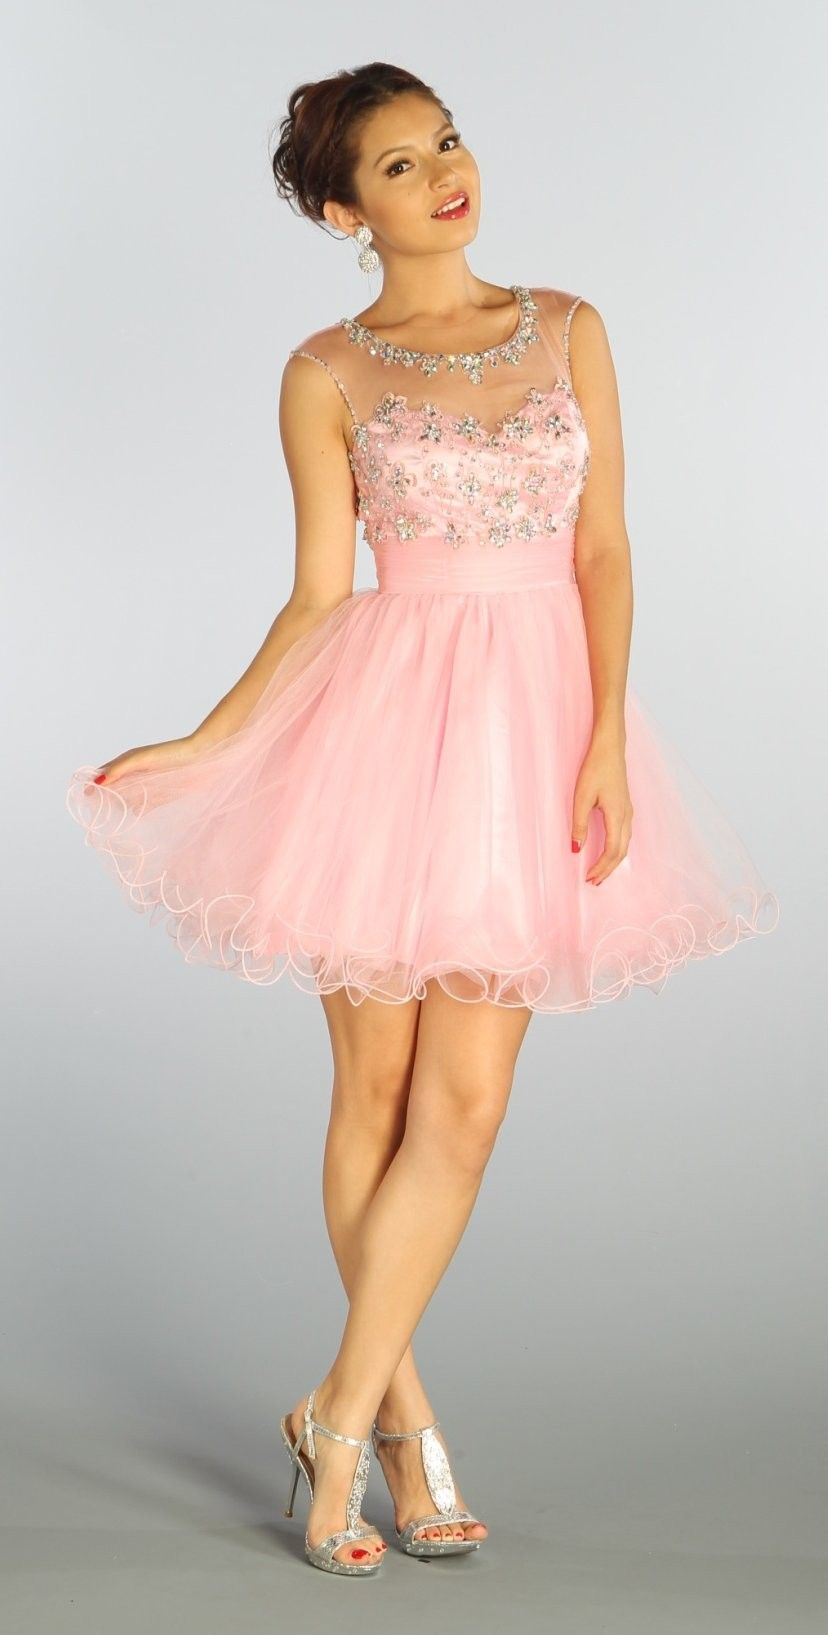 Short Mesh Light Pink Homecoming Dress Lace Appliques Illusion Neck ...